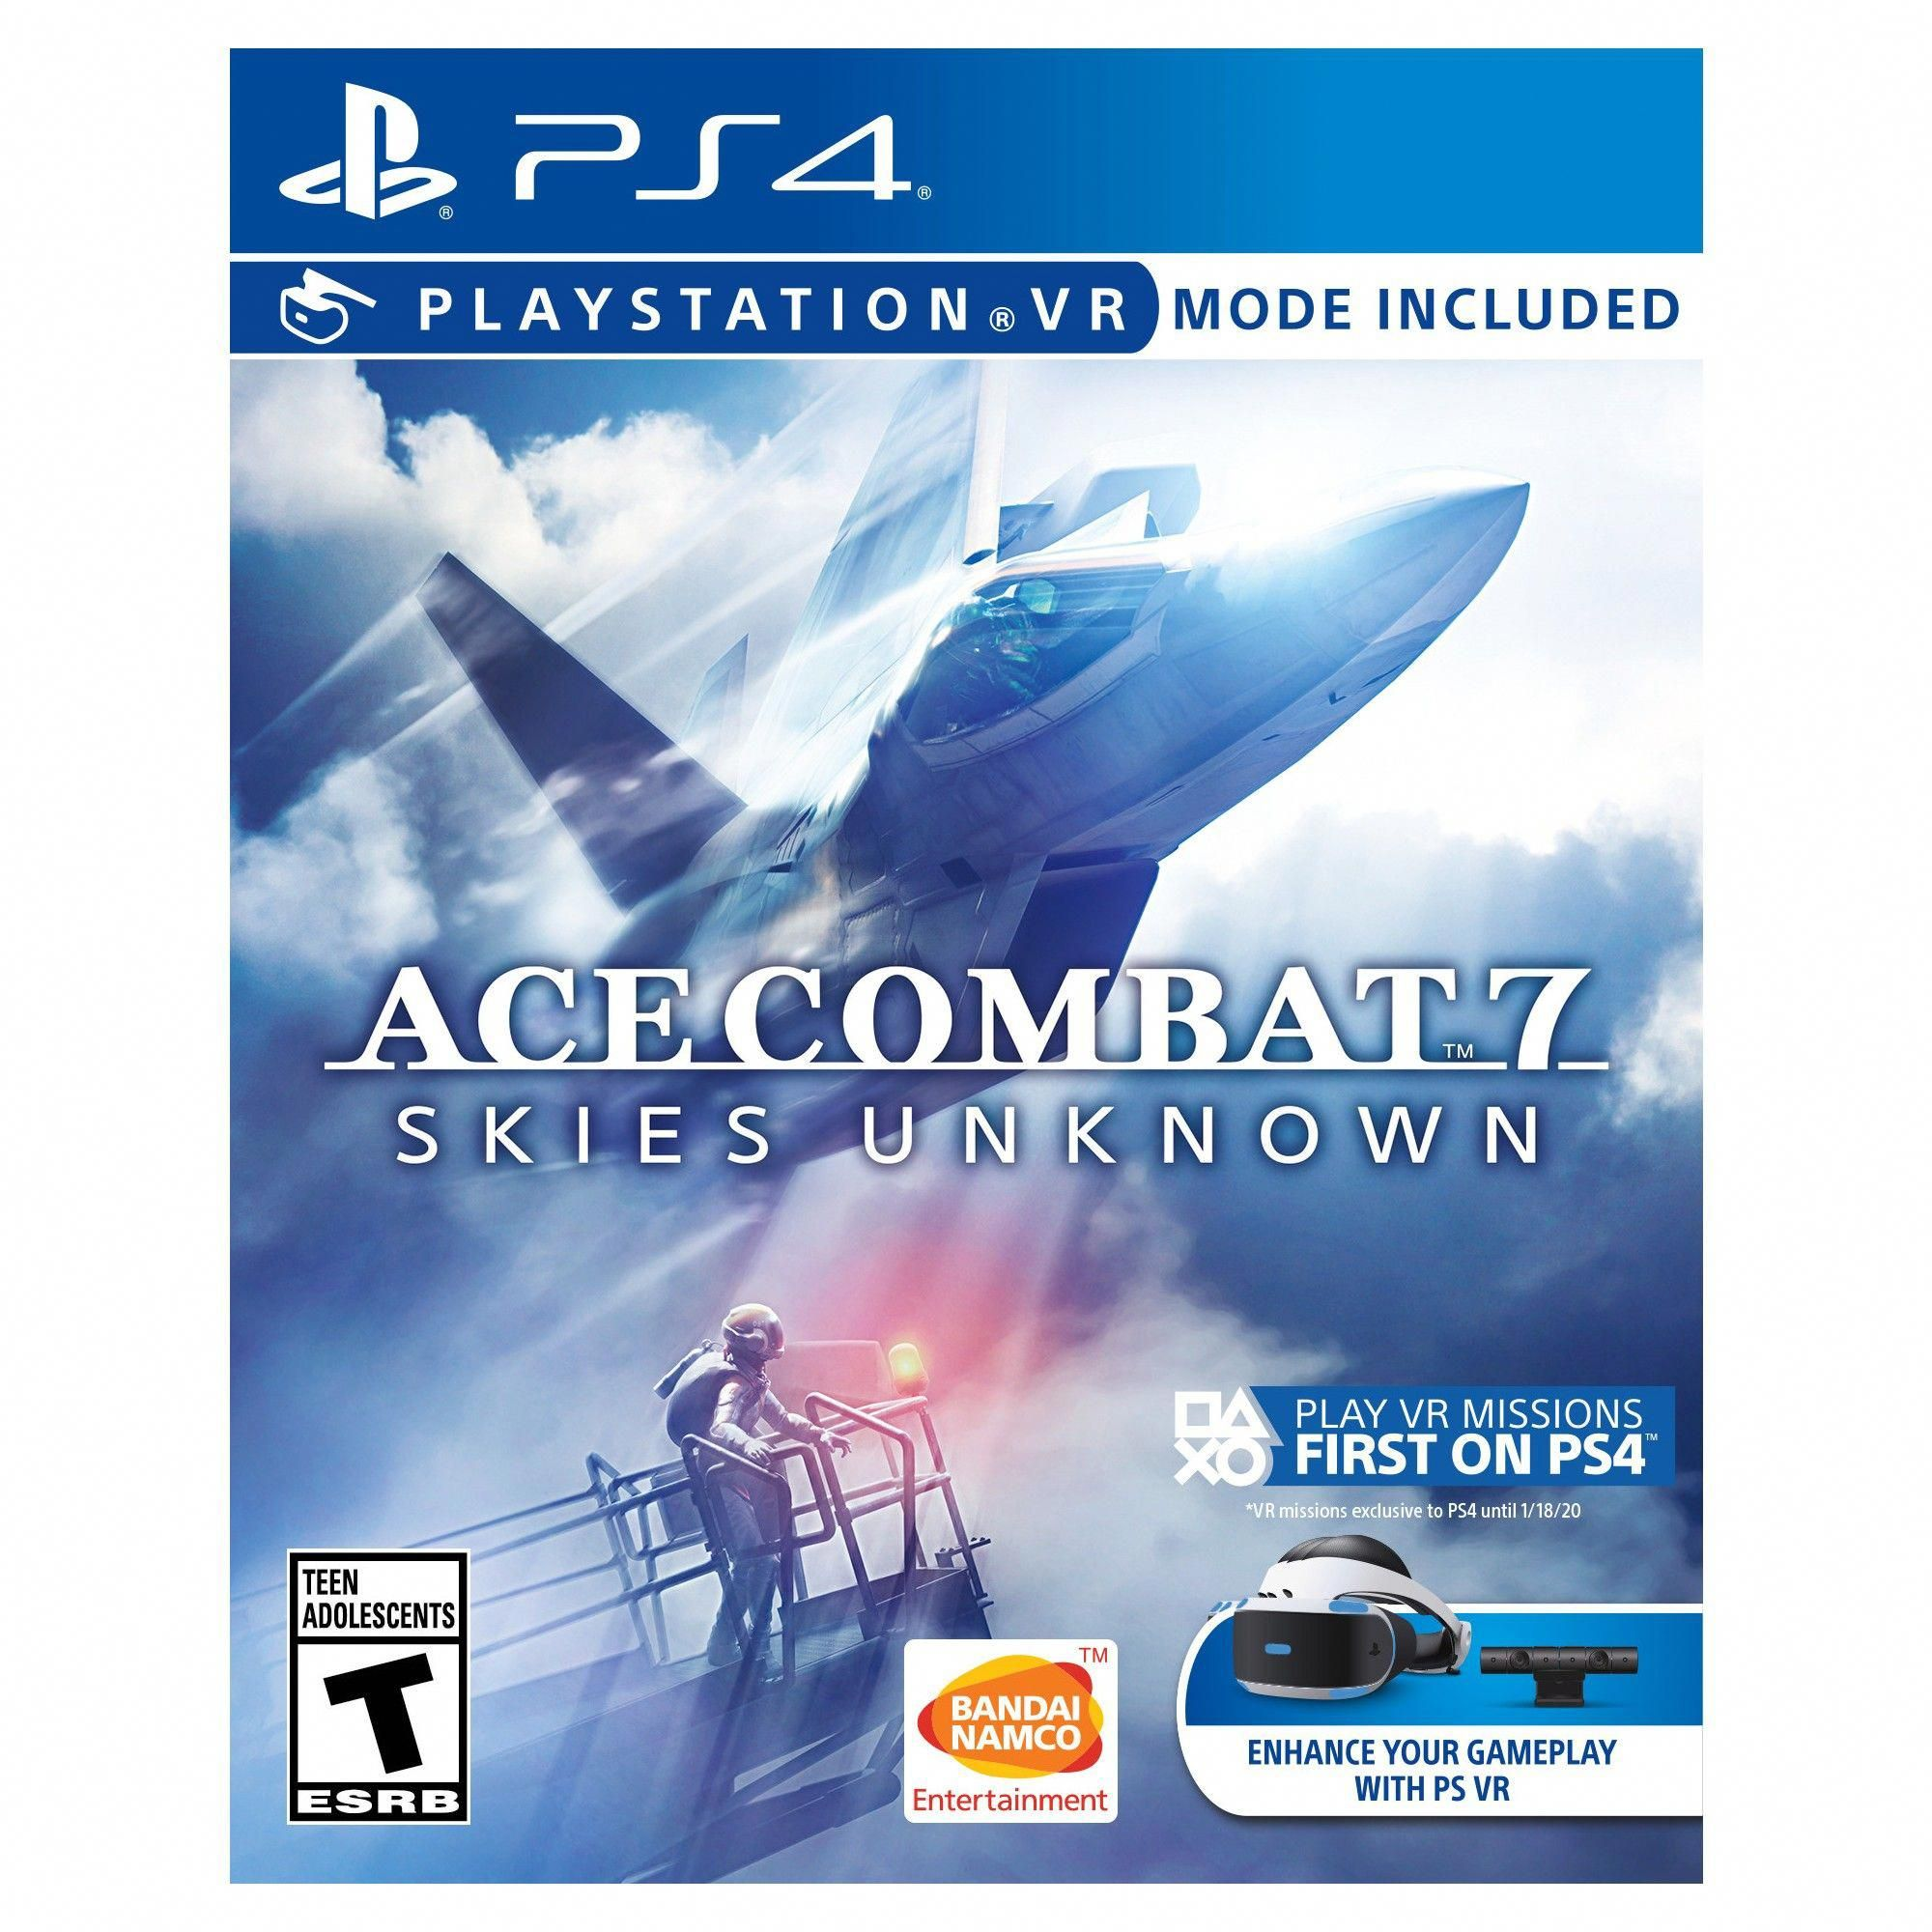 Ace Combat 7 Skies Unknown PlayStation 4 nintendoswitch